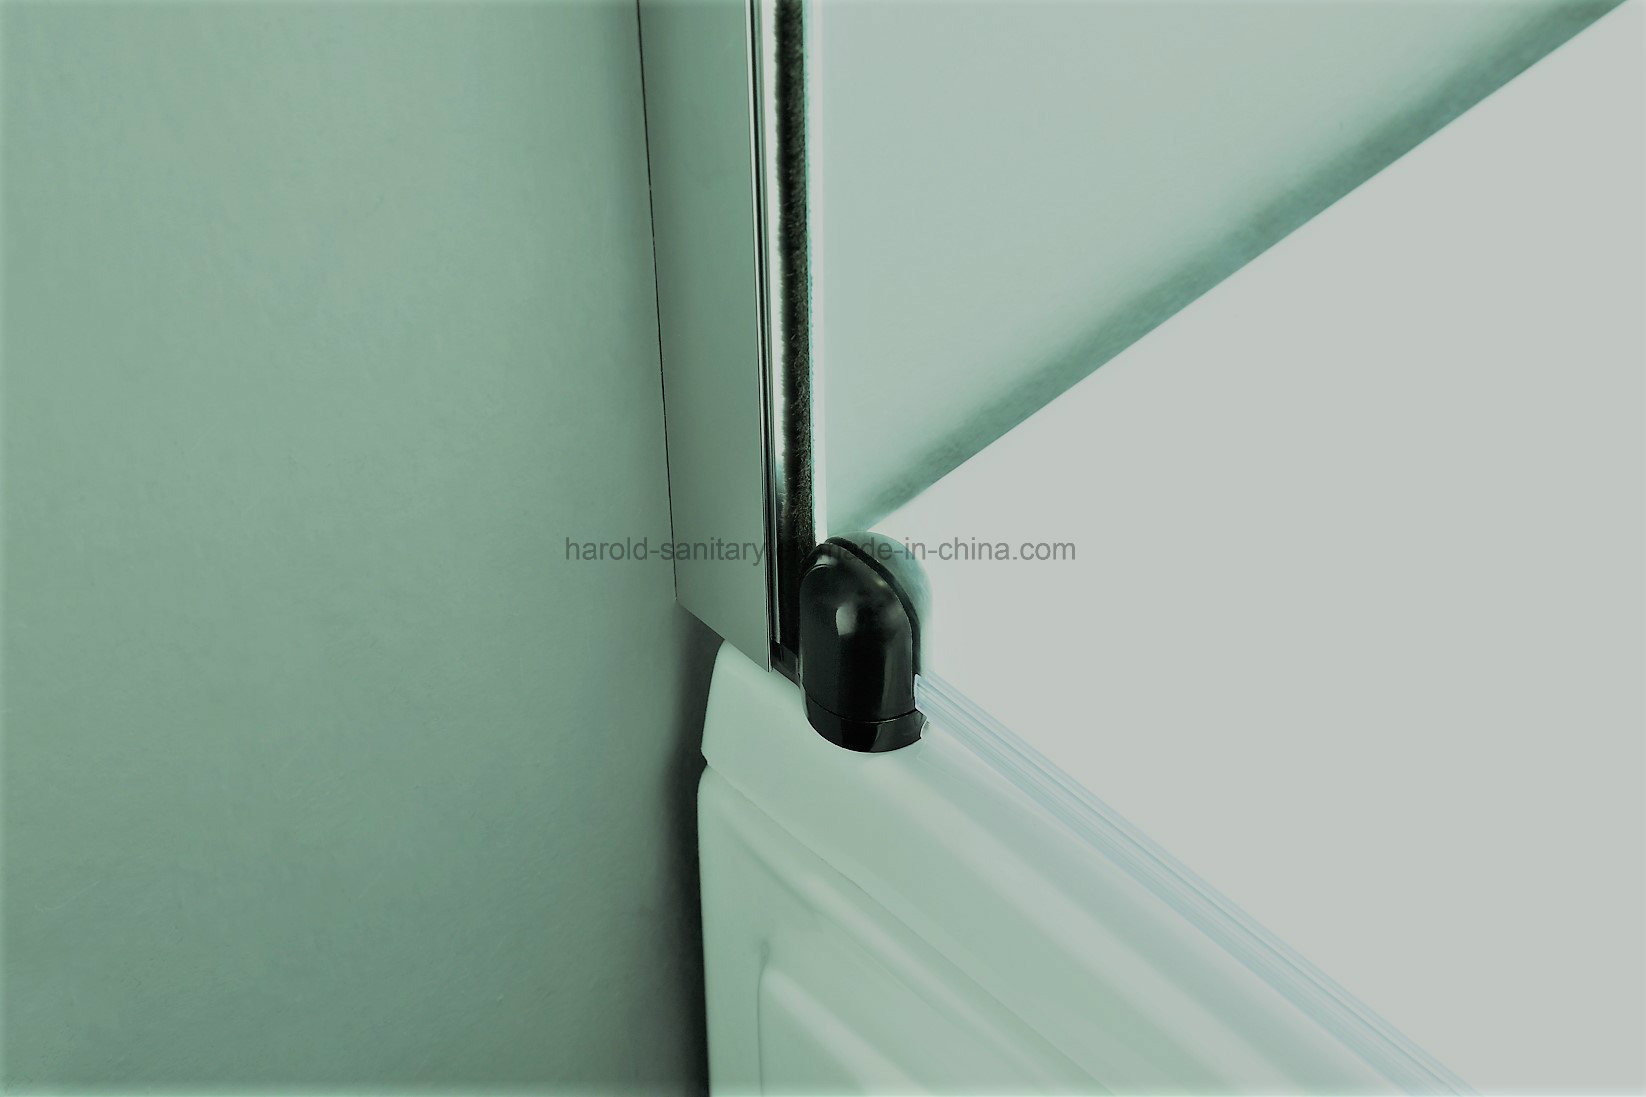 HR-P009 Lift-off Swing Shower Screen / Bathtub Screen